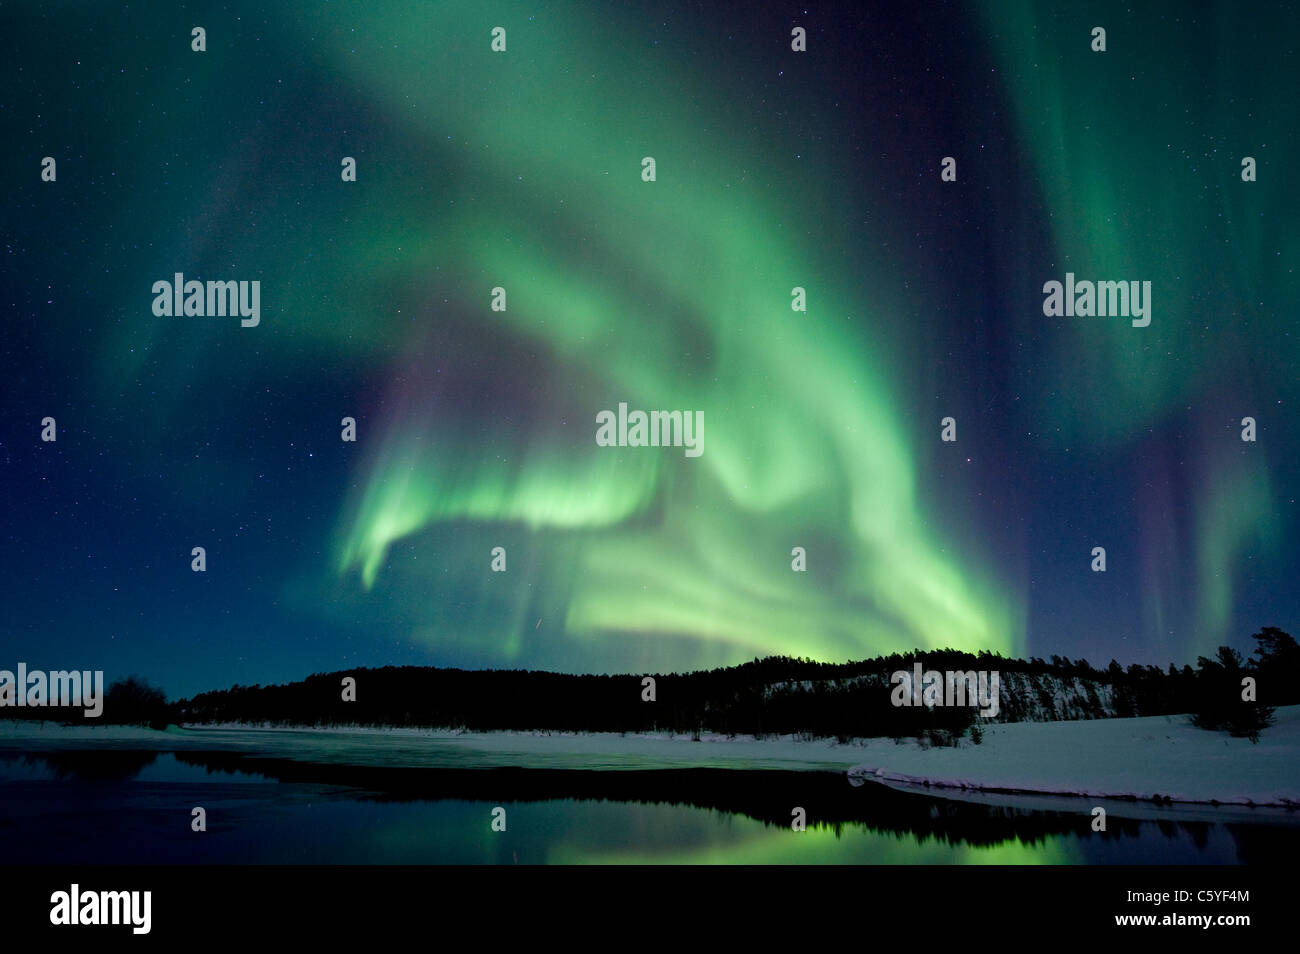 Northern Lights, also known as Aurora Borealis above the snowy tundra. Lapland, Finland. - Stock Image